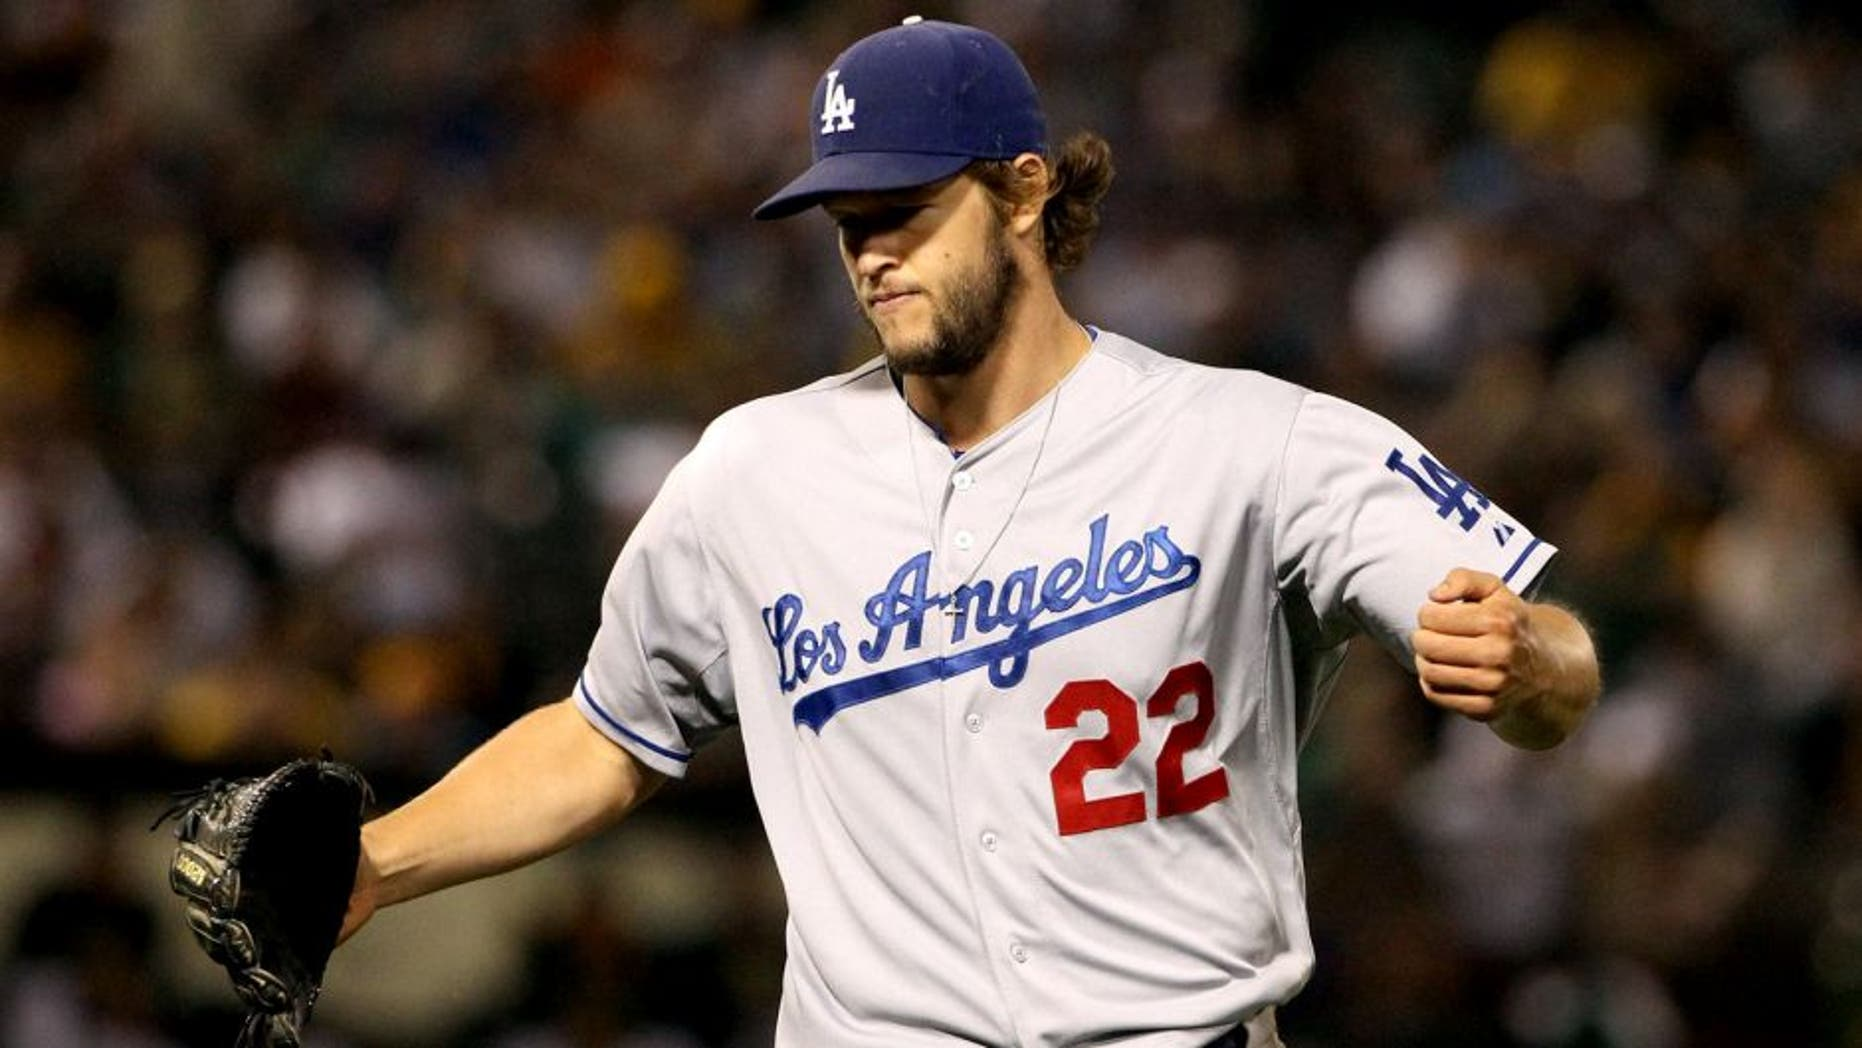 OAKLAND, CA - AUGUST 18: Clayton Kershaw #22 of the Los Angeles Dodgers reacts after the Dodgers got the last out of the seventh inning of their game against the Oakland Athletics at O.co Coliseum on August 18, 2015 in Oakland, California. (Photo by Ezra Shaw/Getty Images)